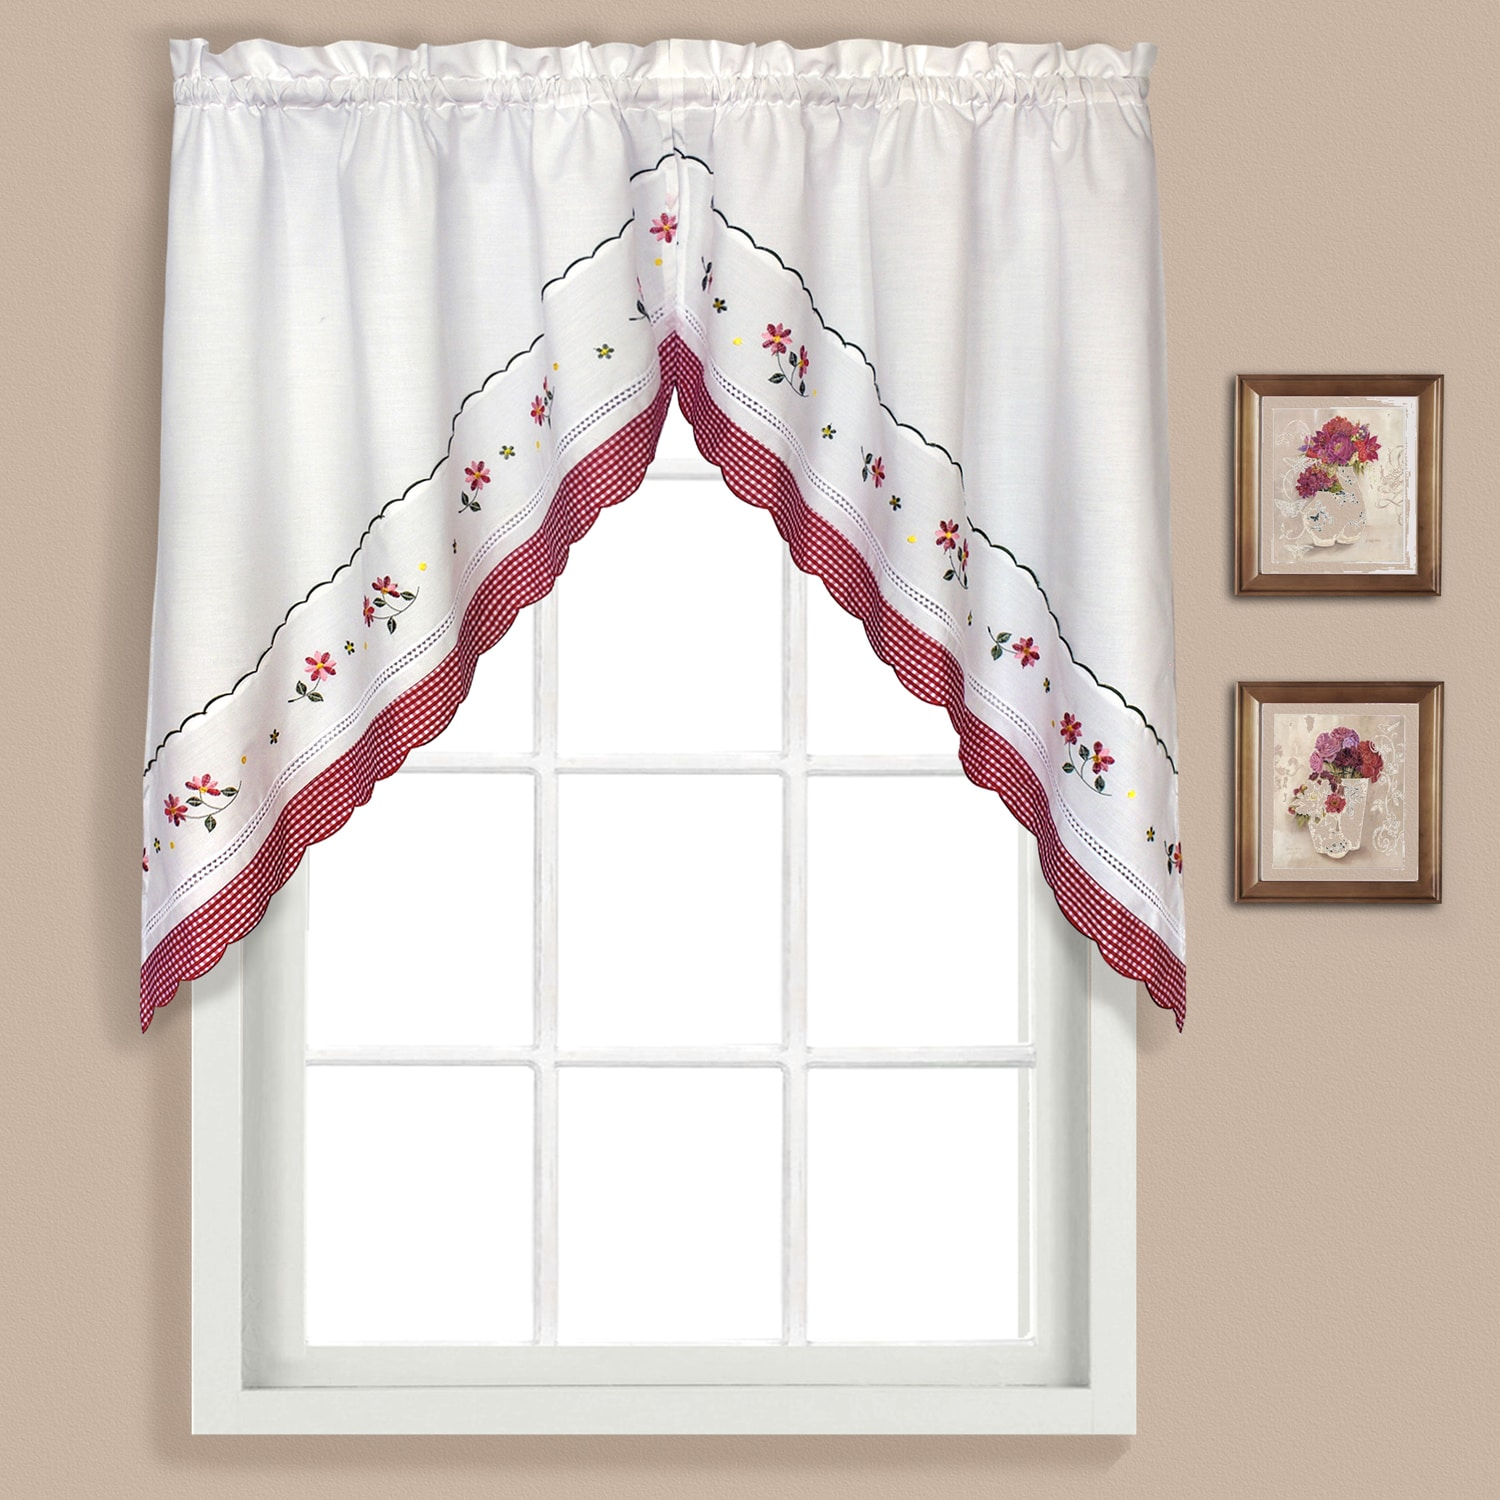 superior Pink Gingham Valance Part - 14: Shop Gingham Kitchen Tiers - Free Shipping On Orders Over $45 -  Overstock.com - 10510788